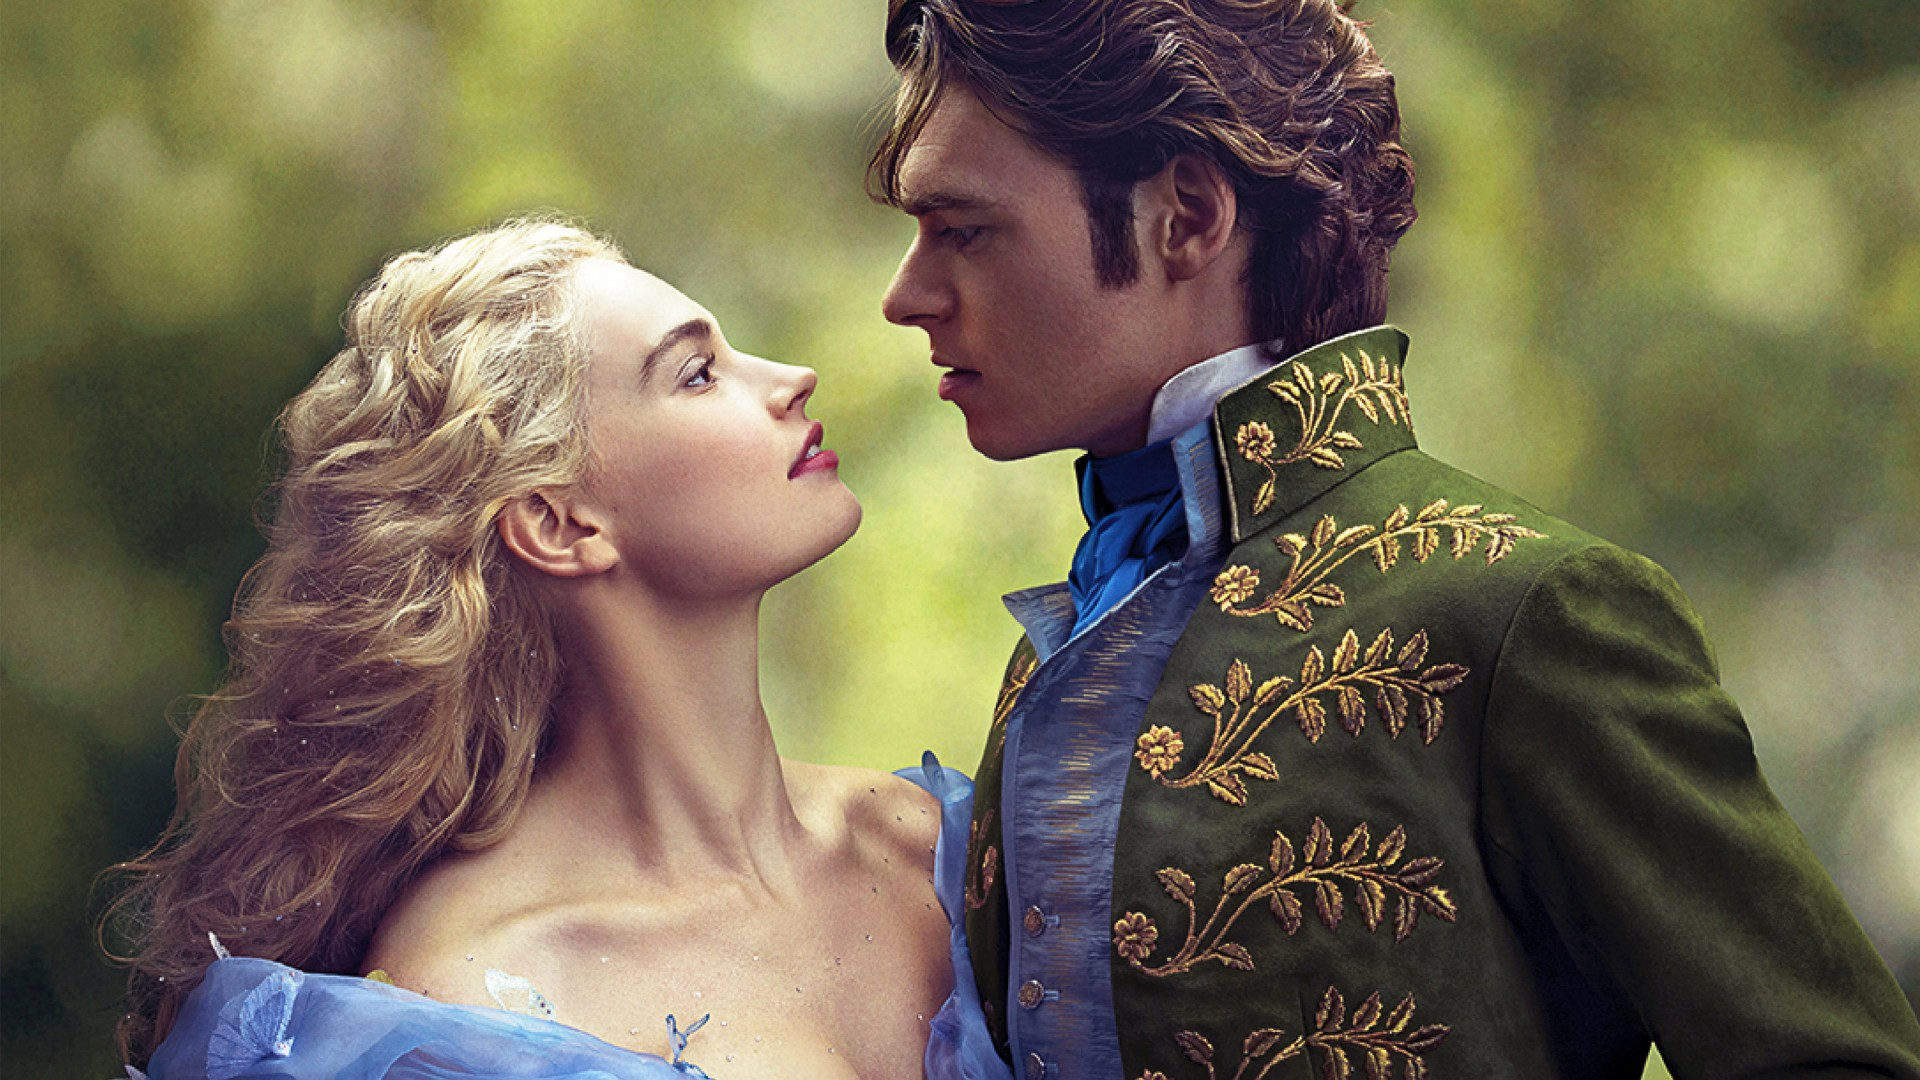 Download Lily James And Richard Madden In Cinderella HD Wallpaper 1920x1080